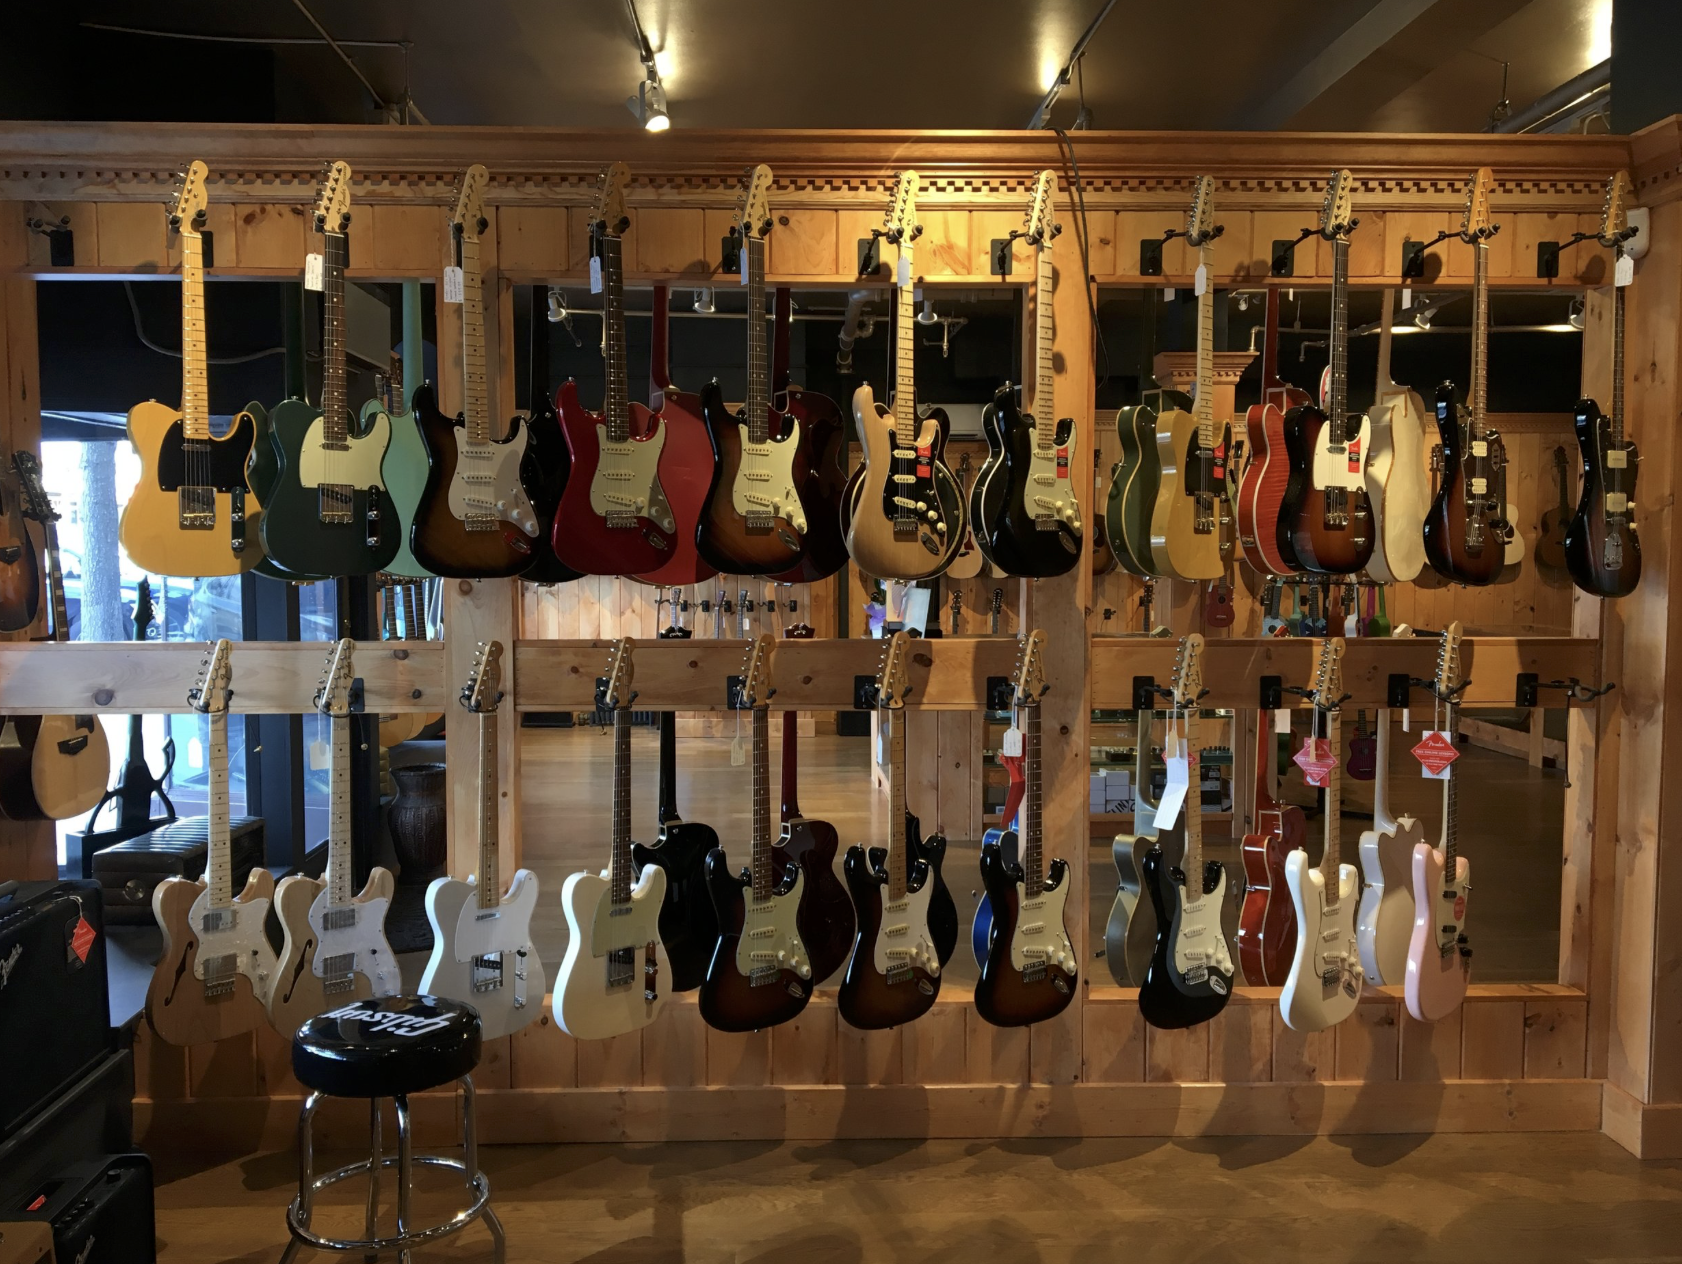 assorted guitars hanging on wall